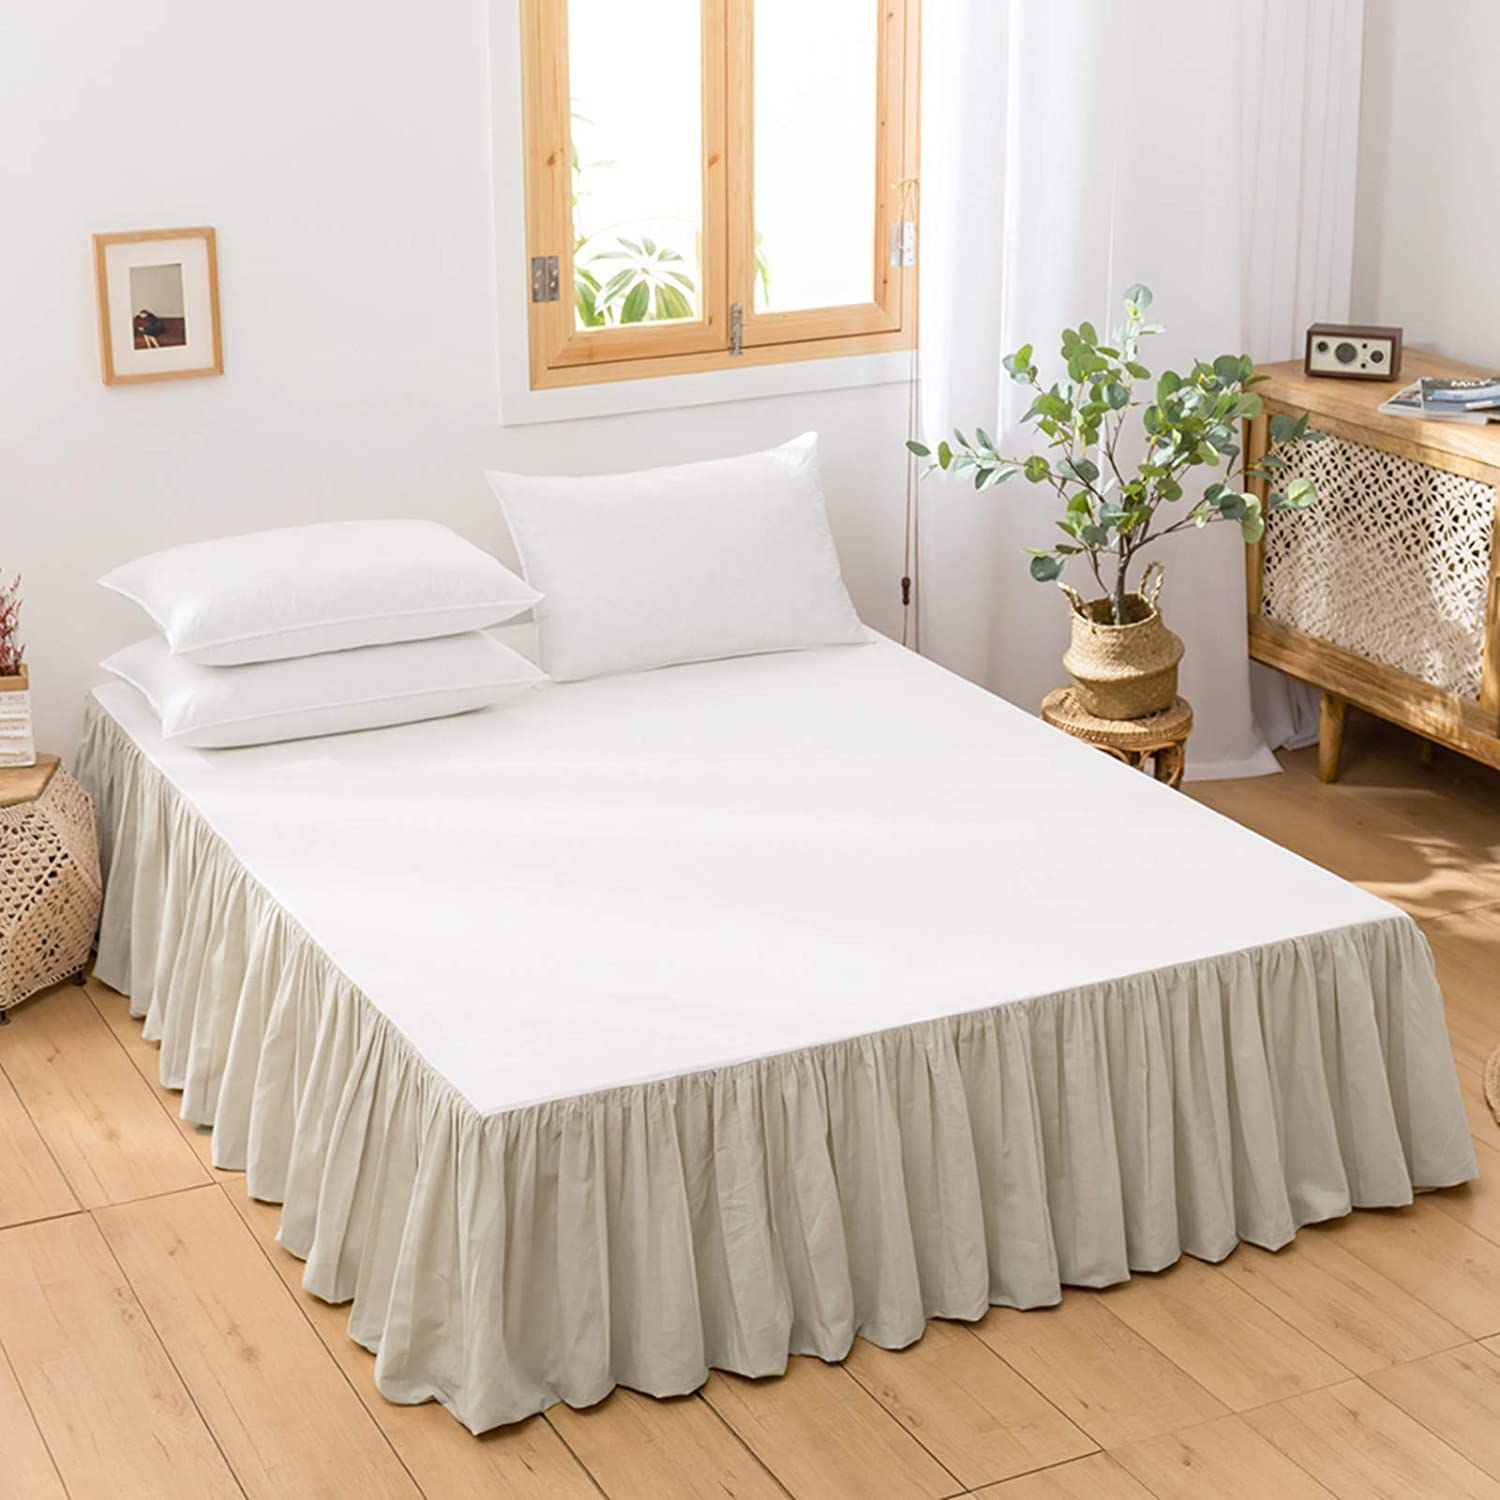 BISELINA French Linen Bed Skirt gift with Frills 14-Inch Recommended Tail Pleated